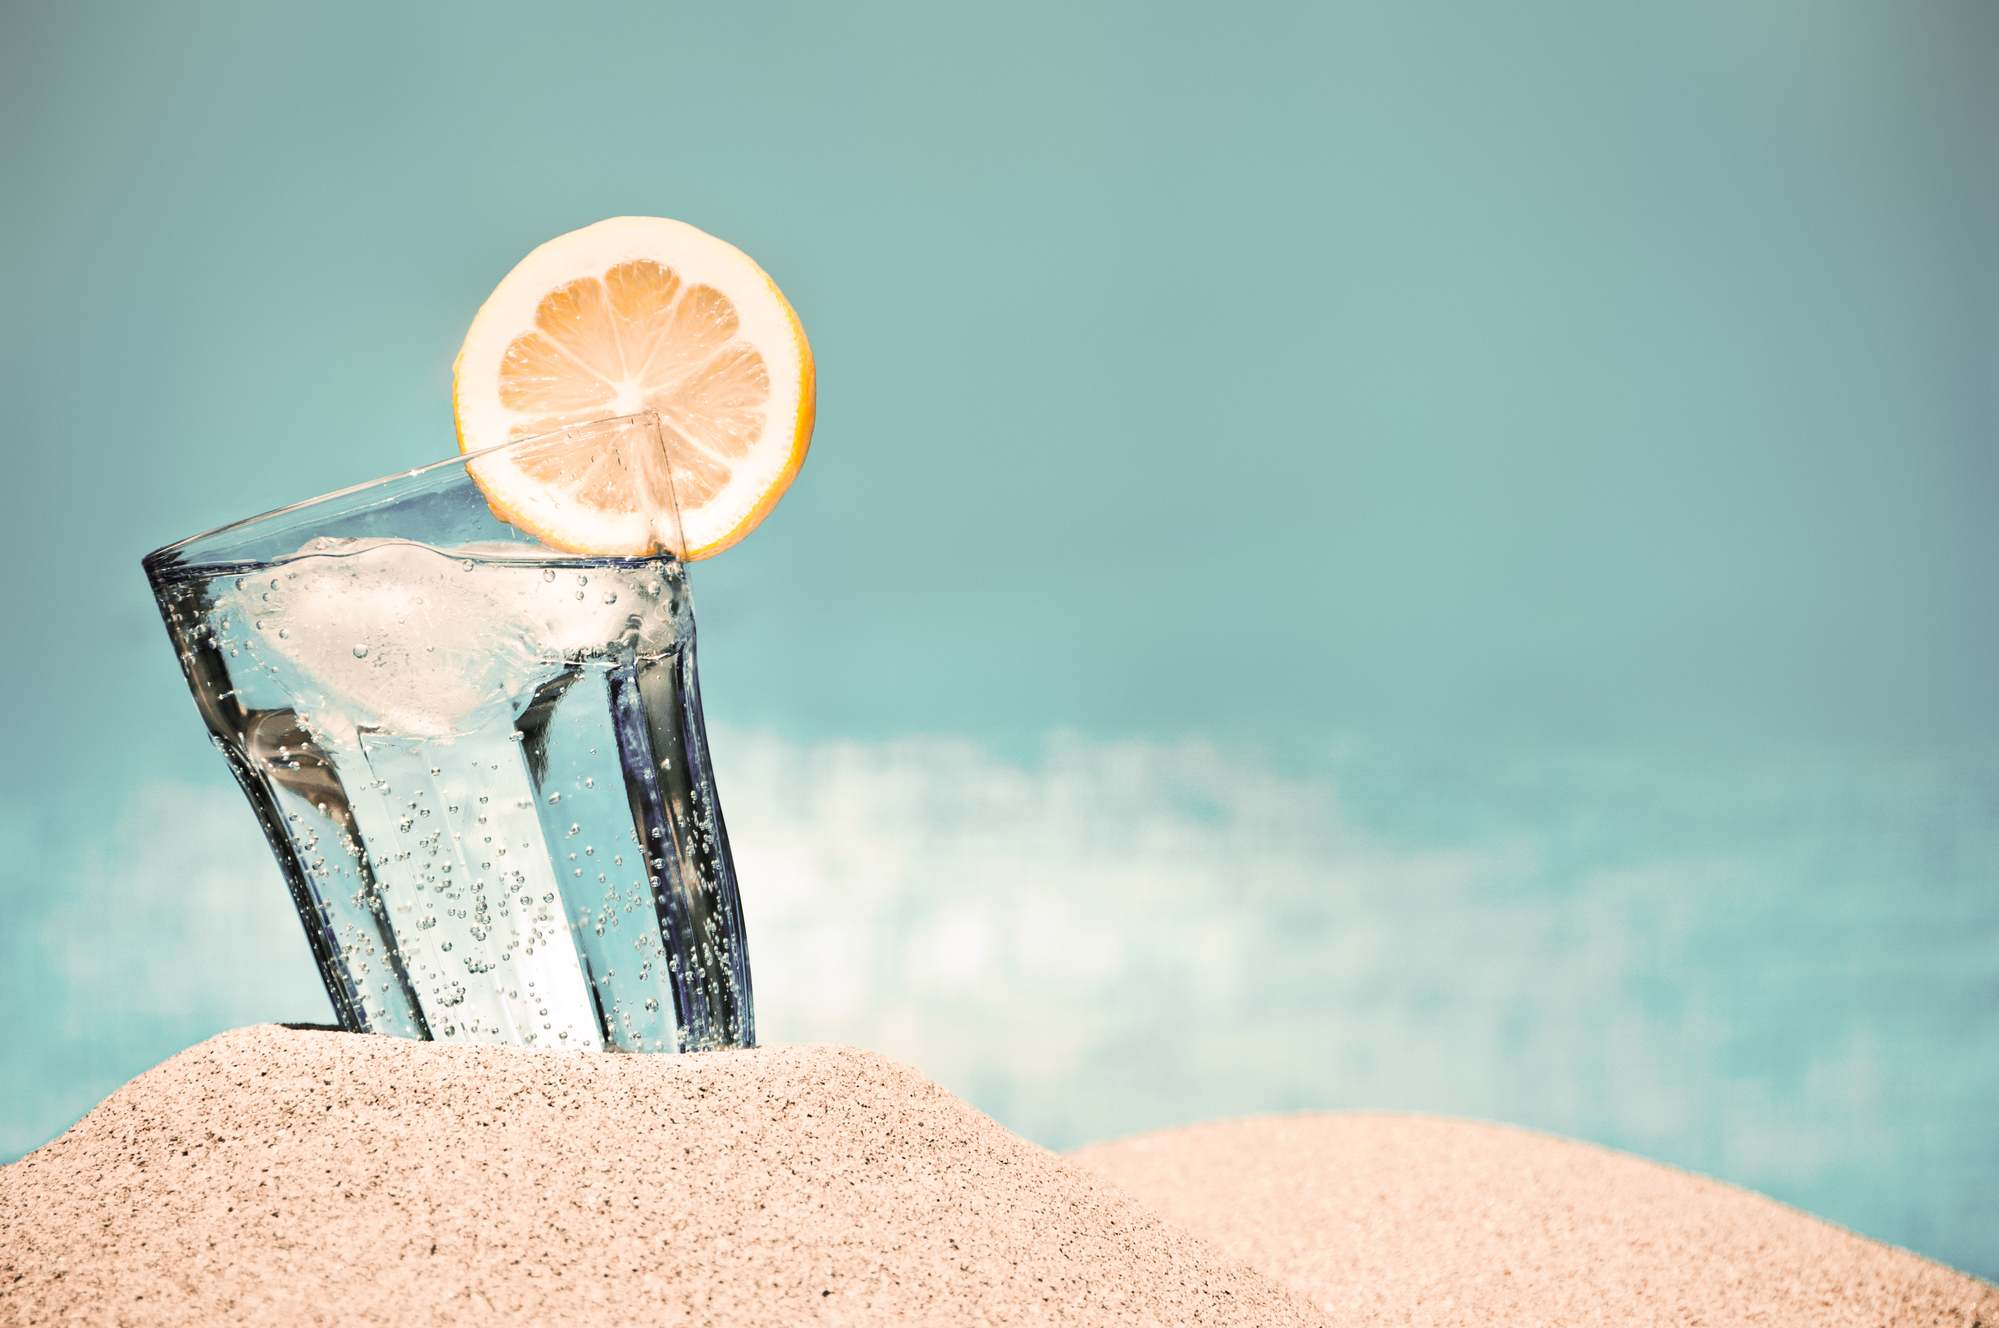 Ready to drink more water? - .... add fresh squeezed lemon juice or lemon oil to it!